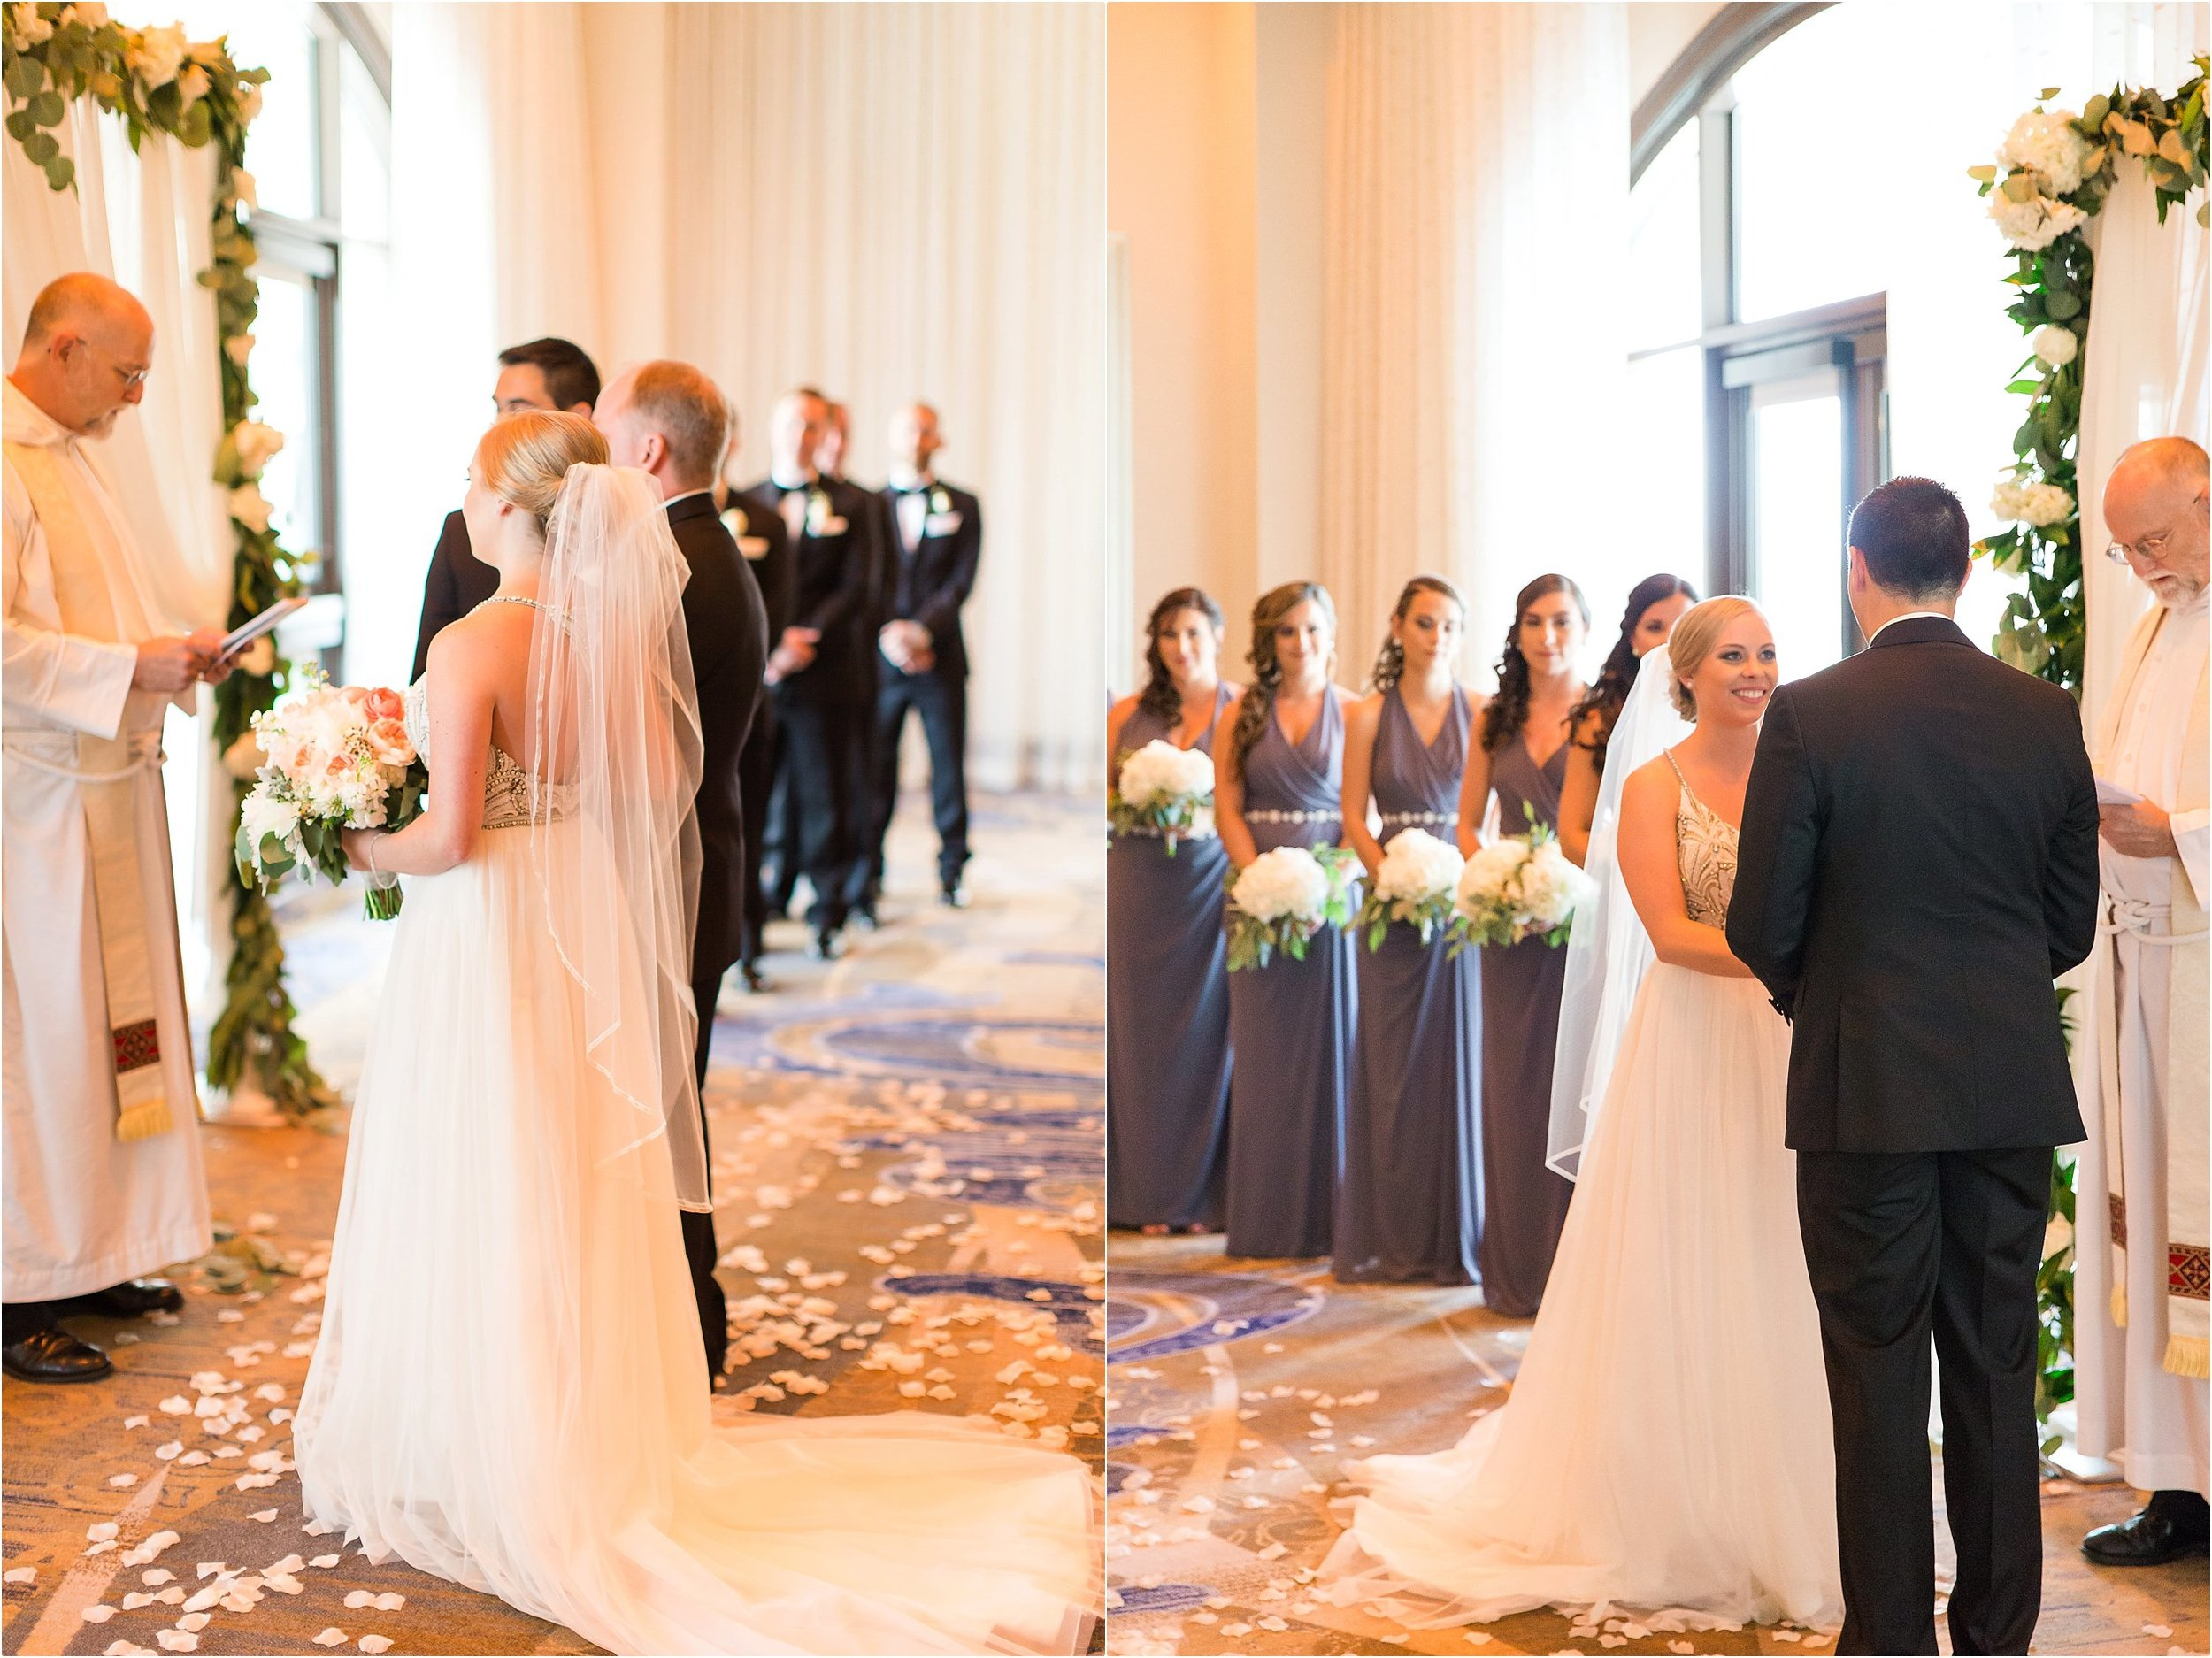 Indoor Ceremony at Wyndham Grand Resort at Bonnet Creek wedding by PSJ Photography